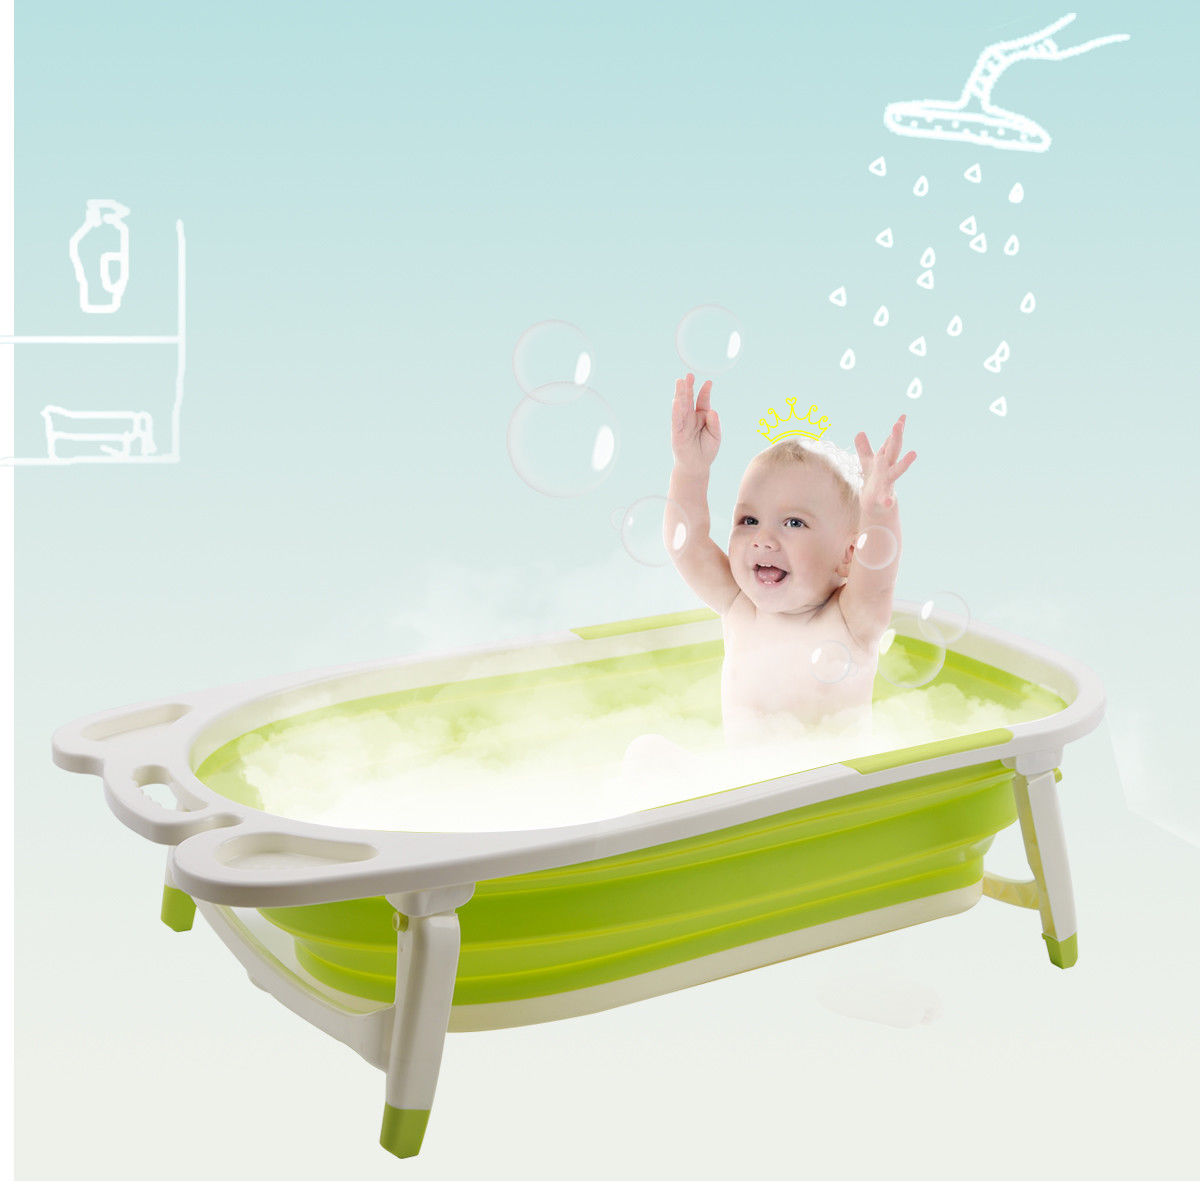 Gymax Green Baby Folding Bathtub Infant Collapsible Portable Shower Basin w  Block by Gymax